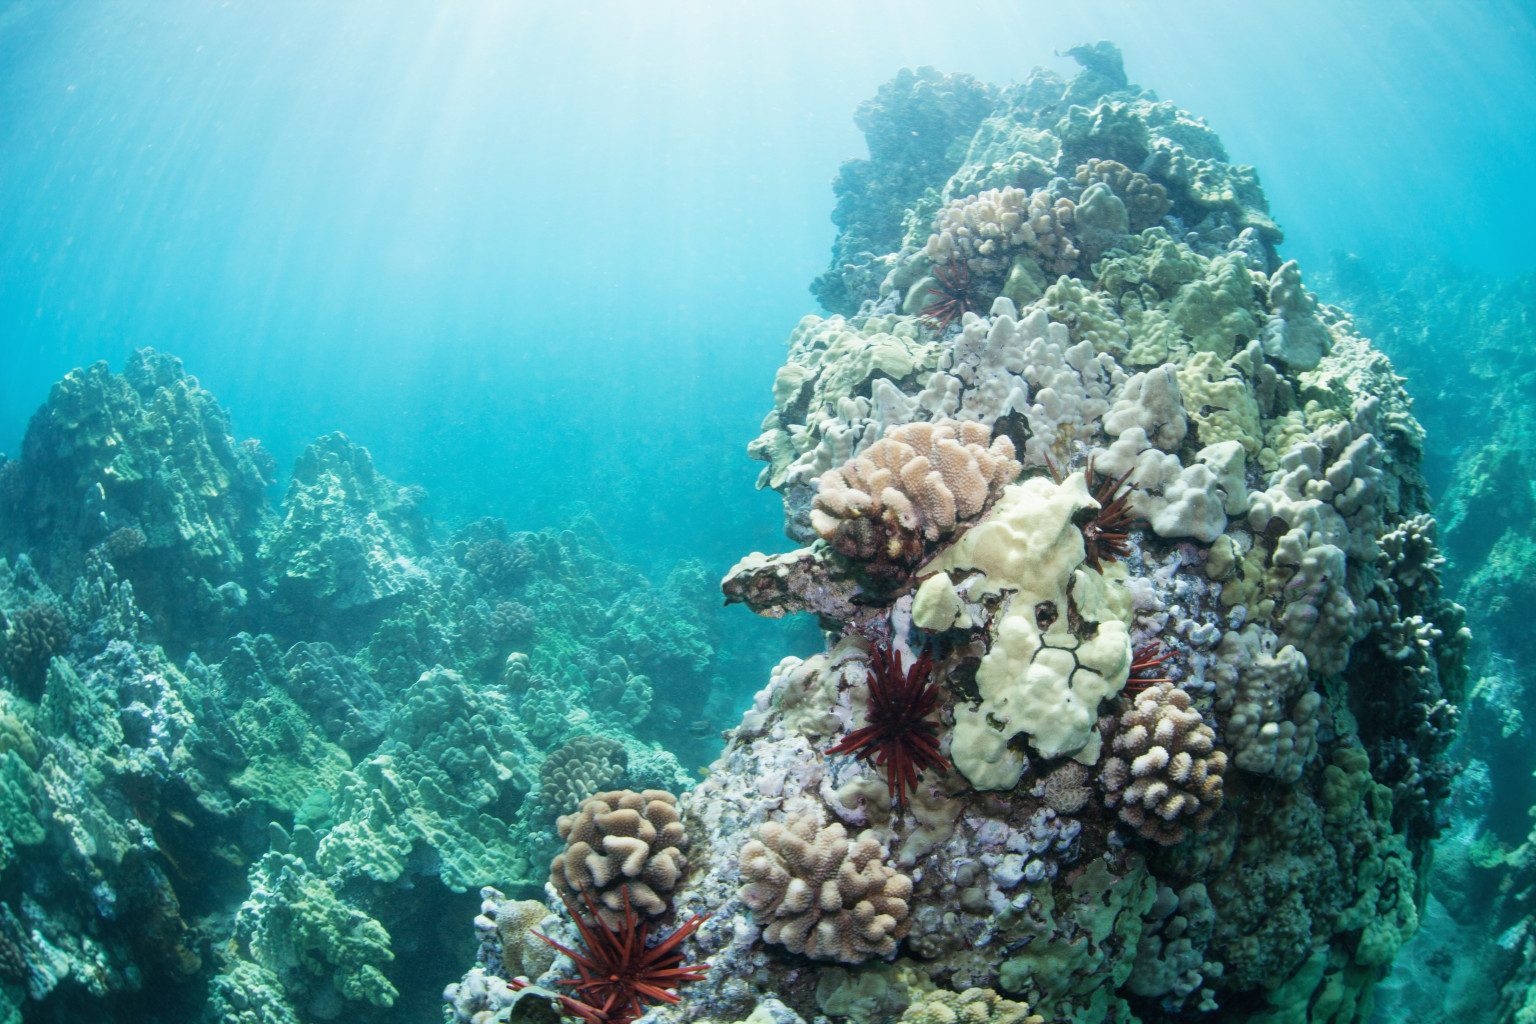 Molasses Spill Causing Coral Reef Death | HuffPost